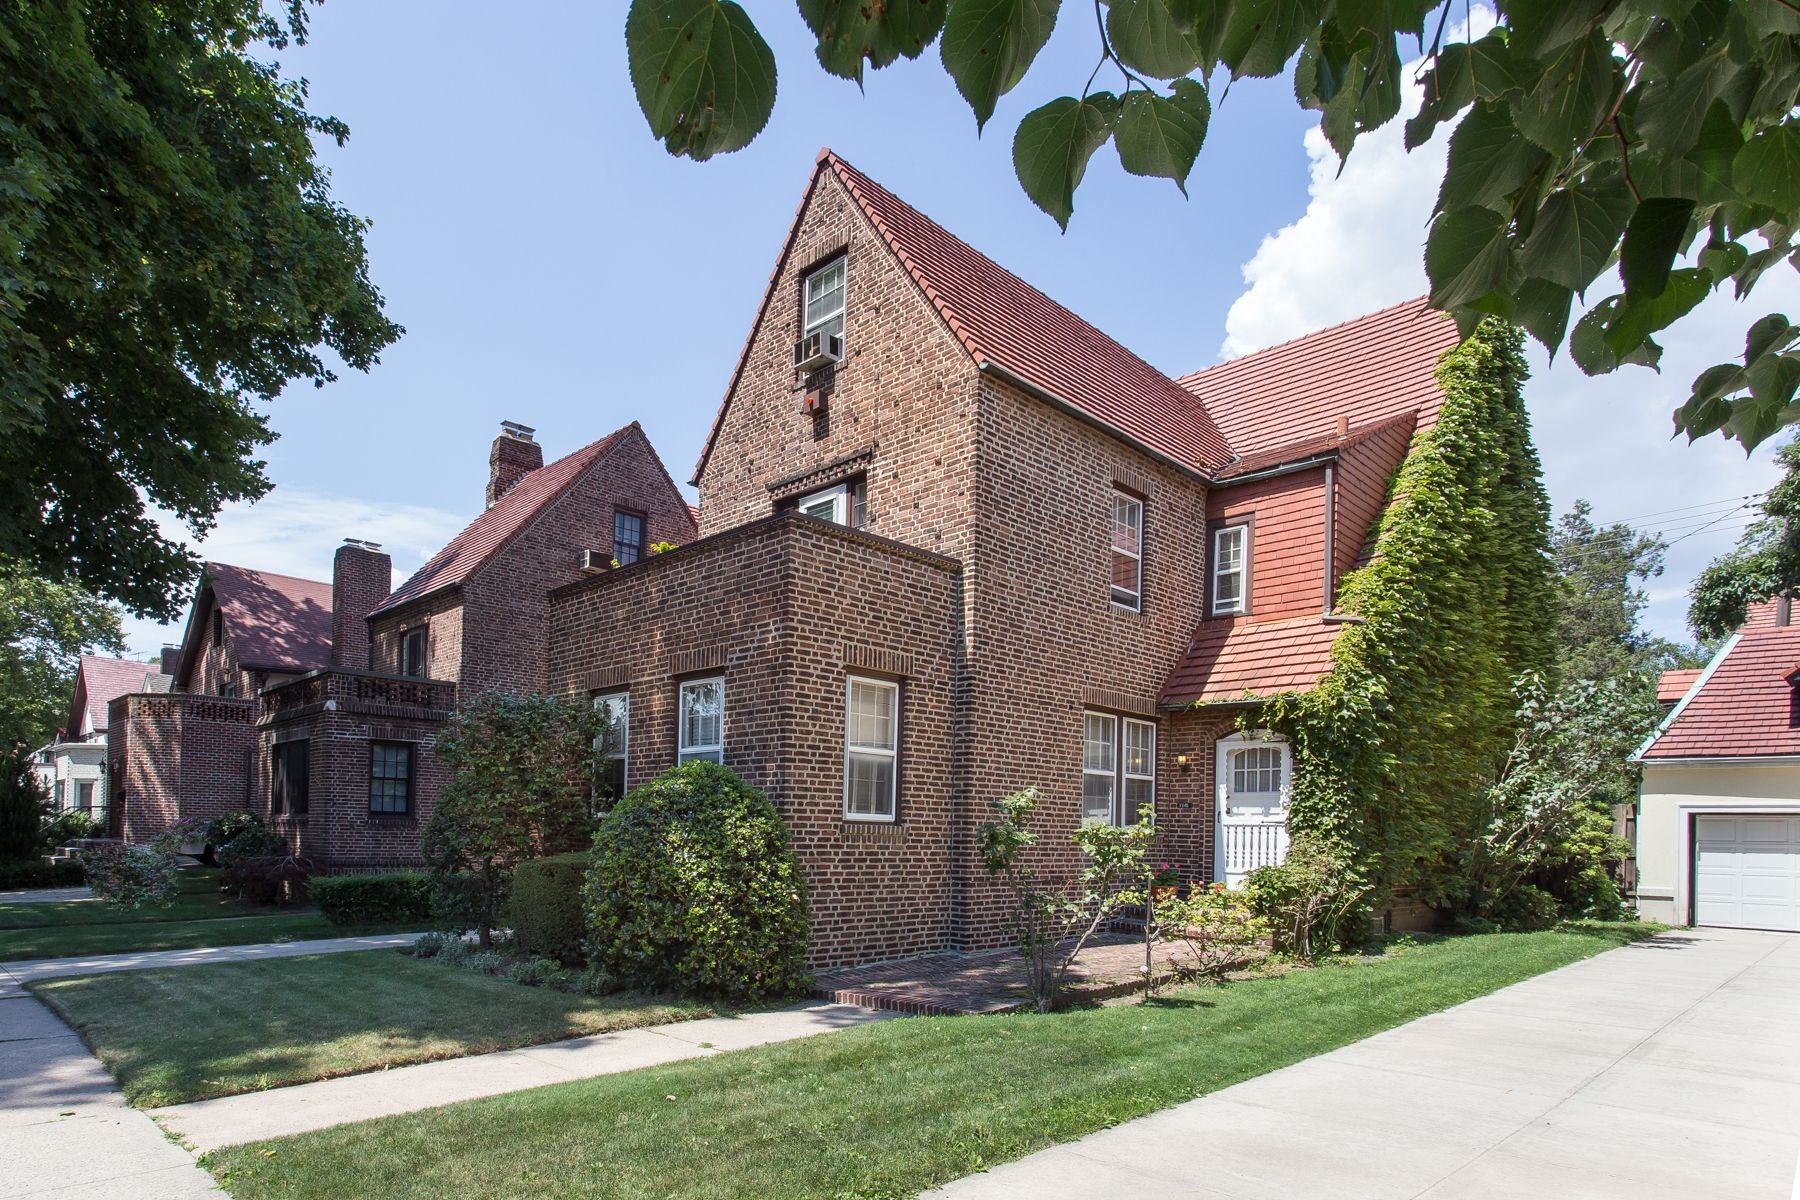 3f15fa4b42bd8e2f9de6ca6db0bfb6f7 - Forest Hills Gardens Real Estate Sotheby's